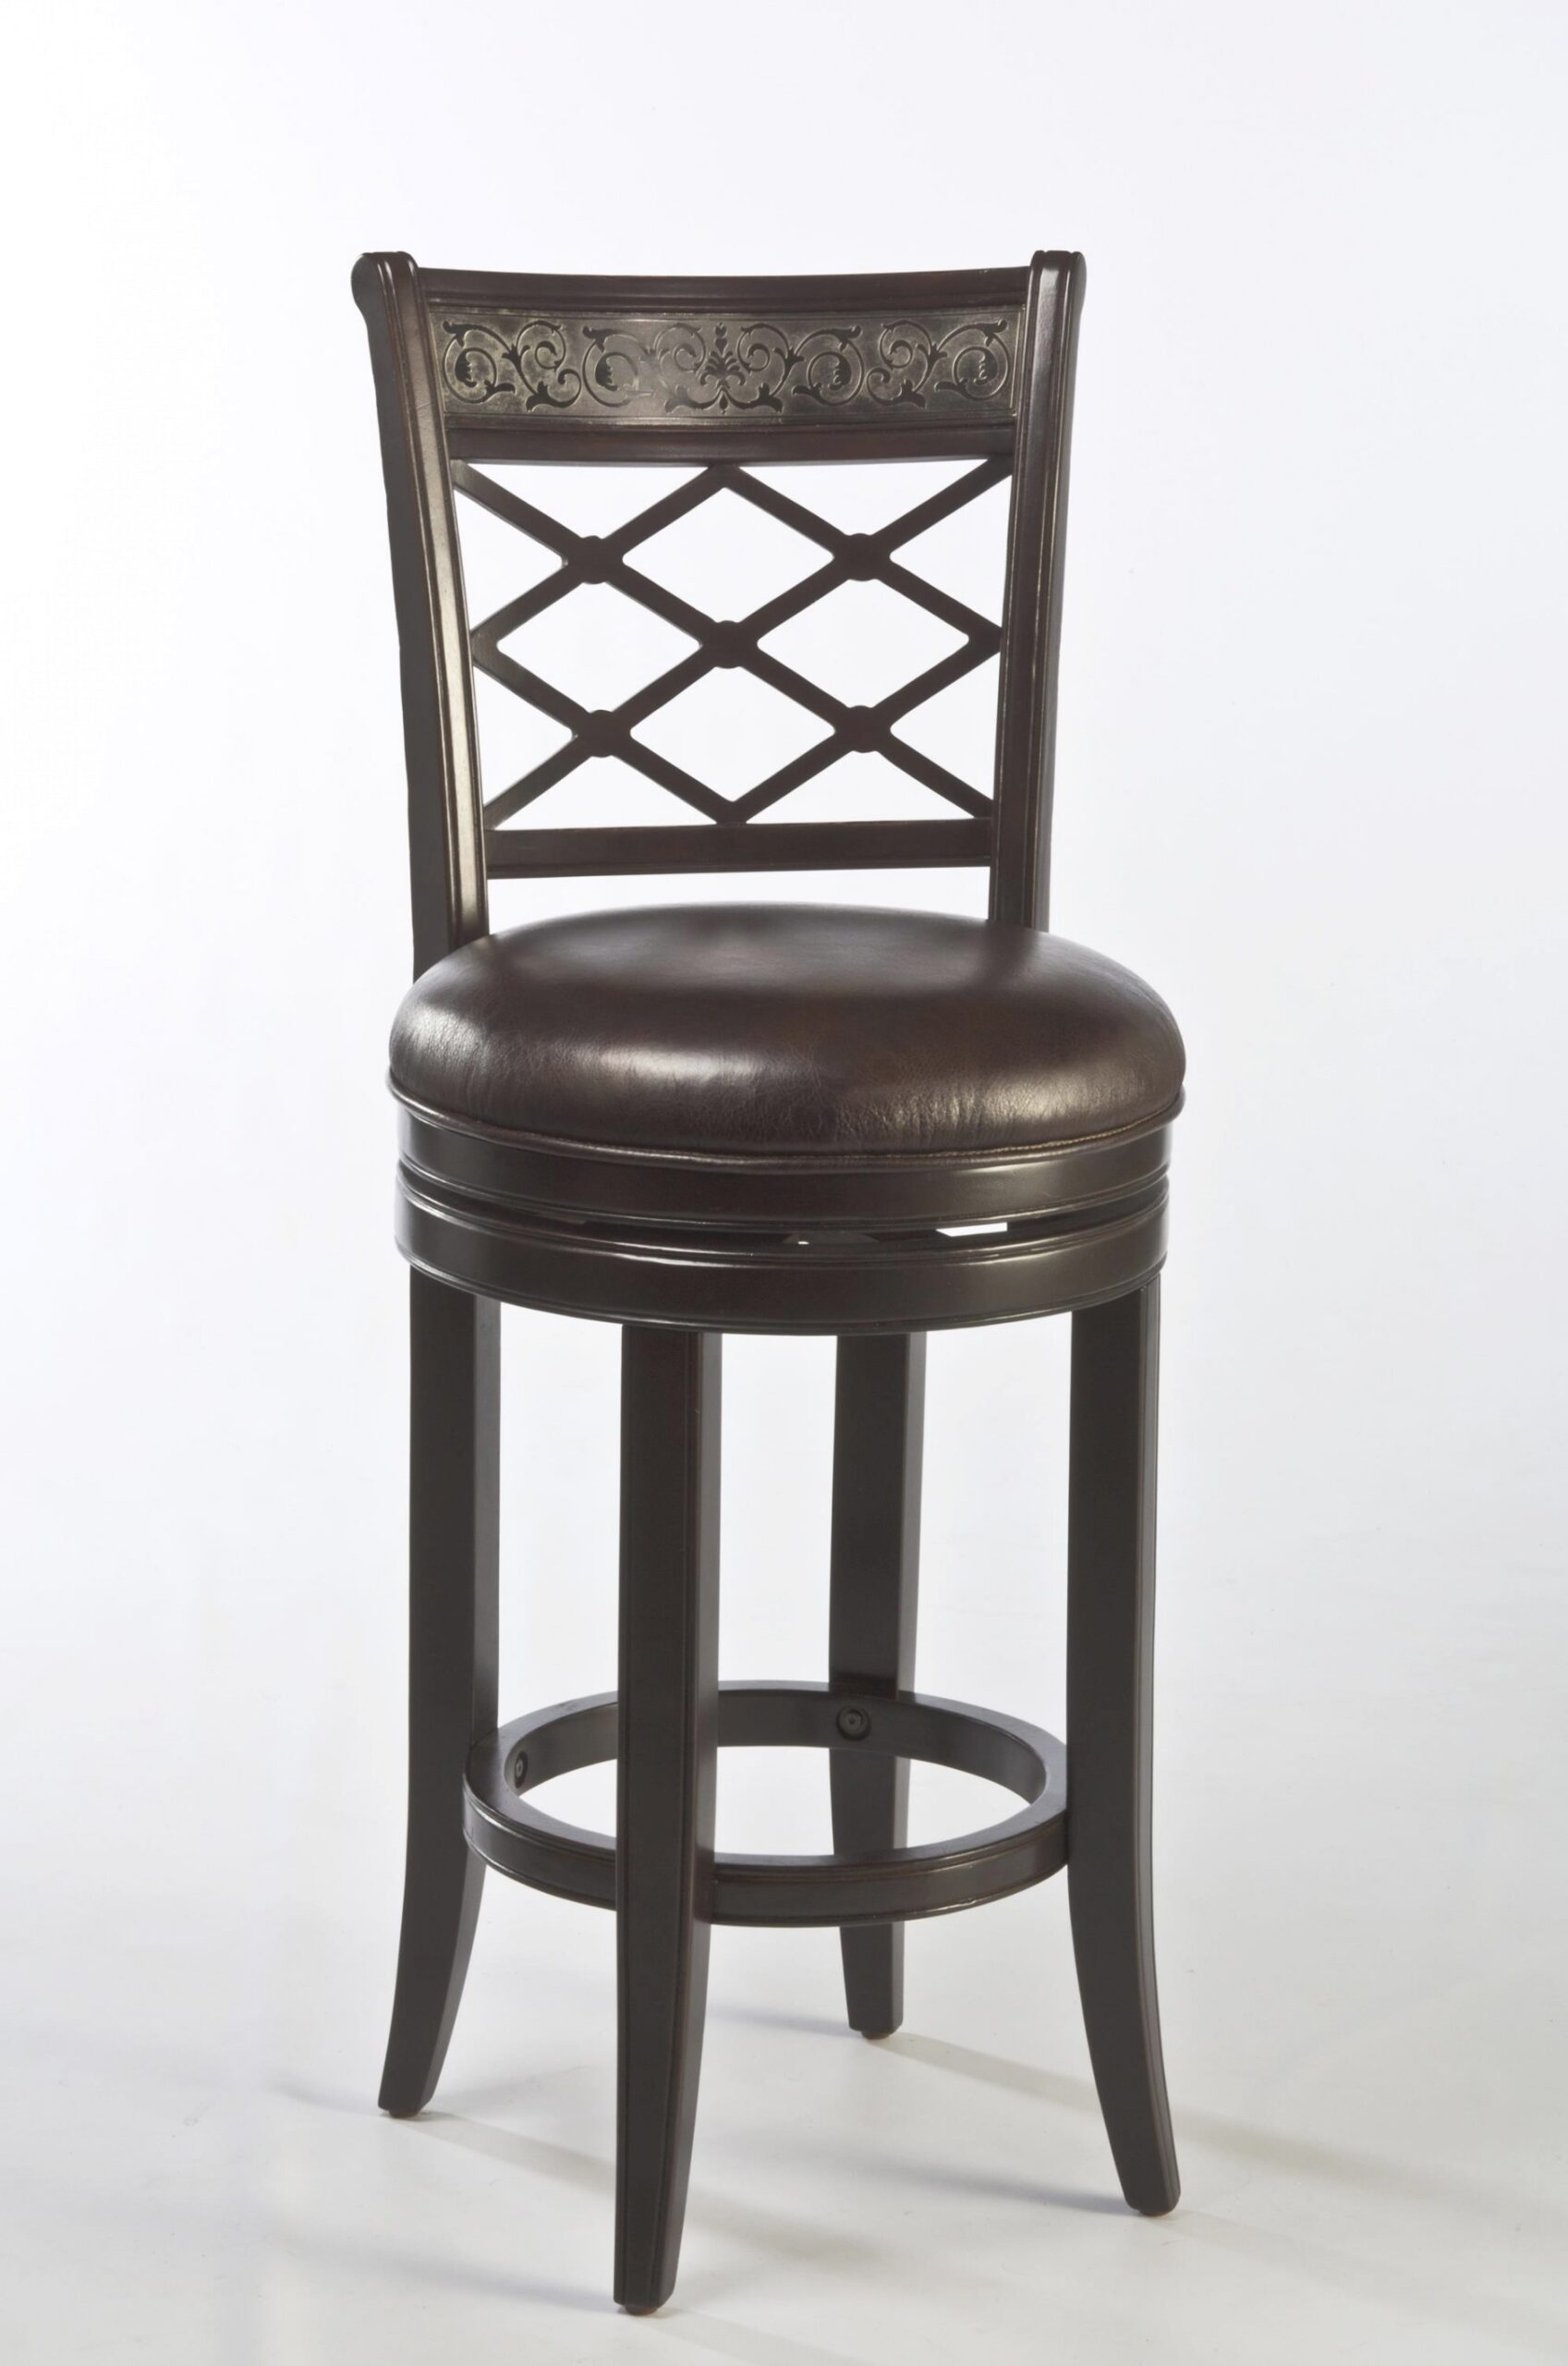 Spalding Swivel Bar Stool With Etched Pattern pertaining to Swivel Bar Stools With Backs